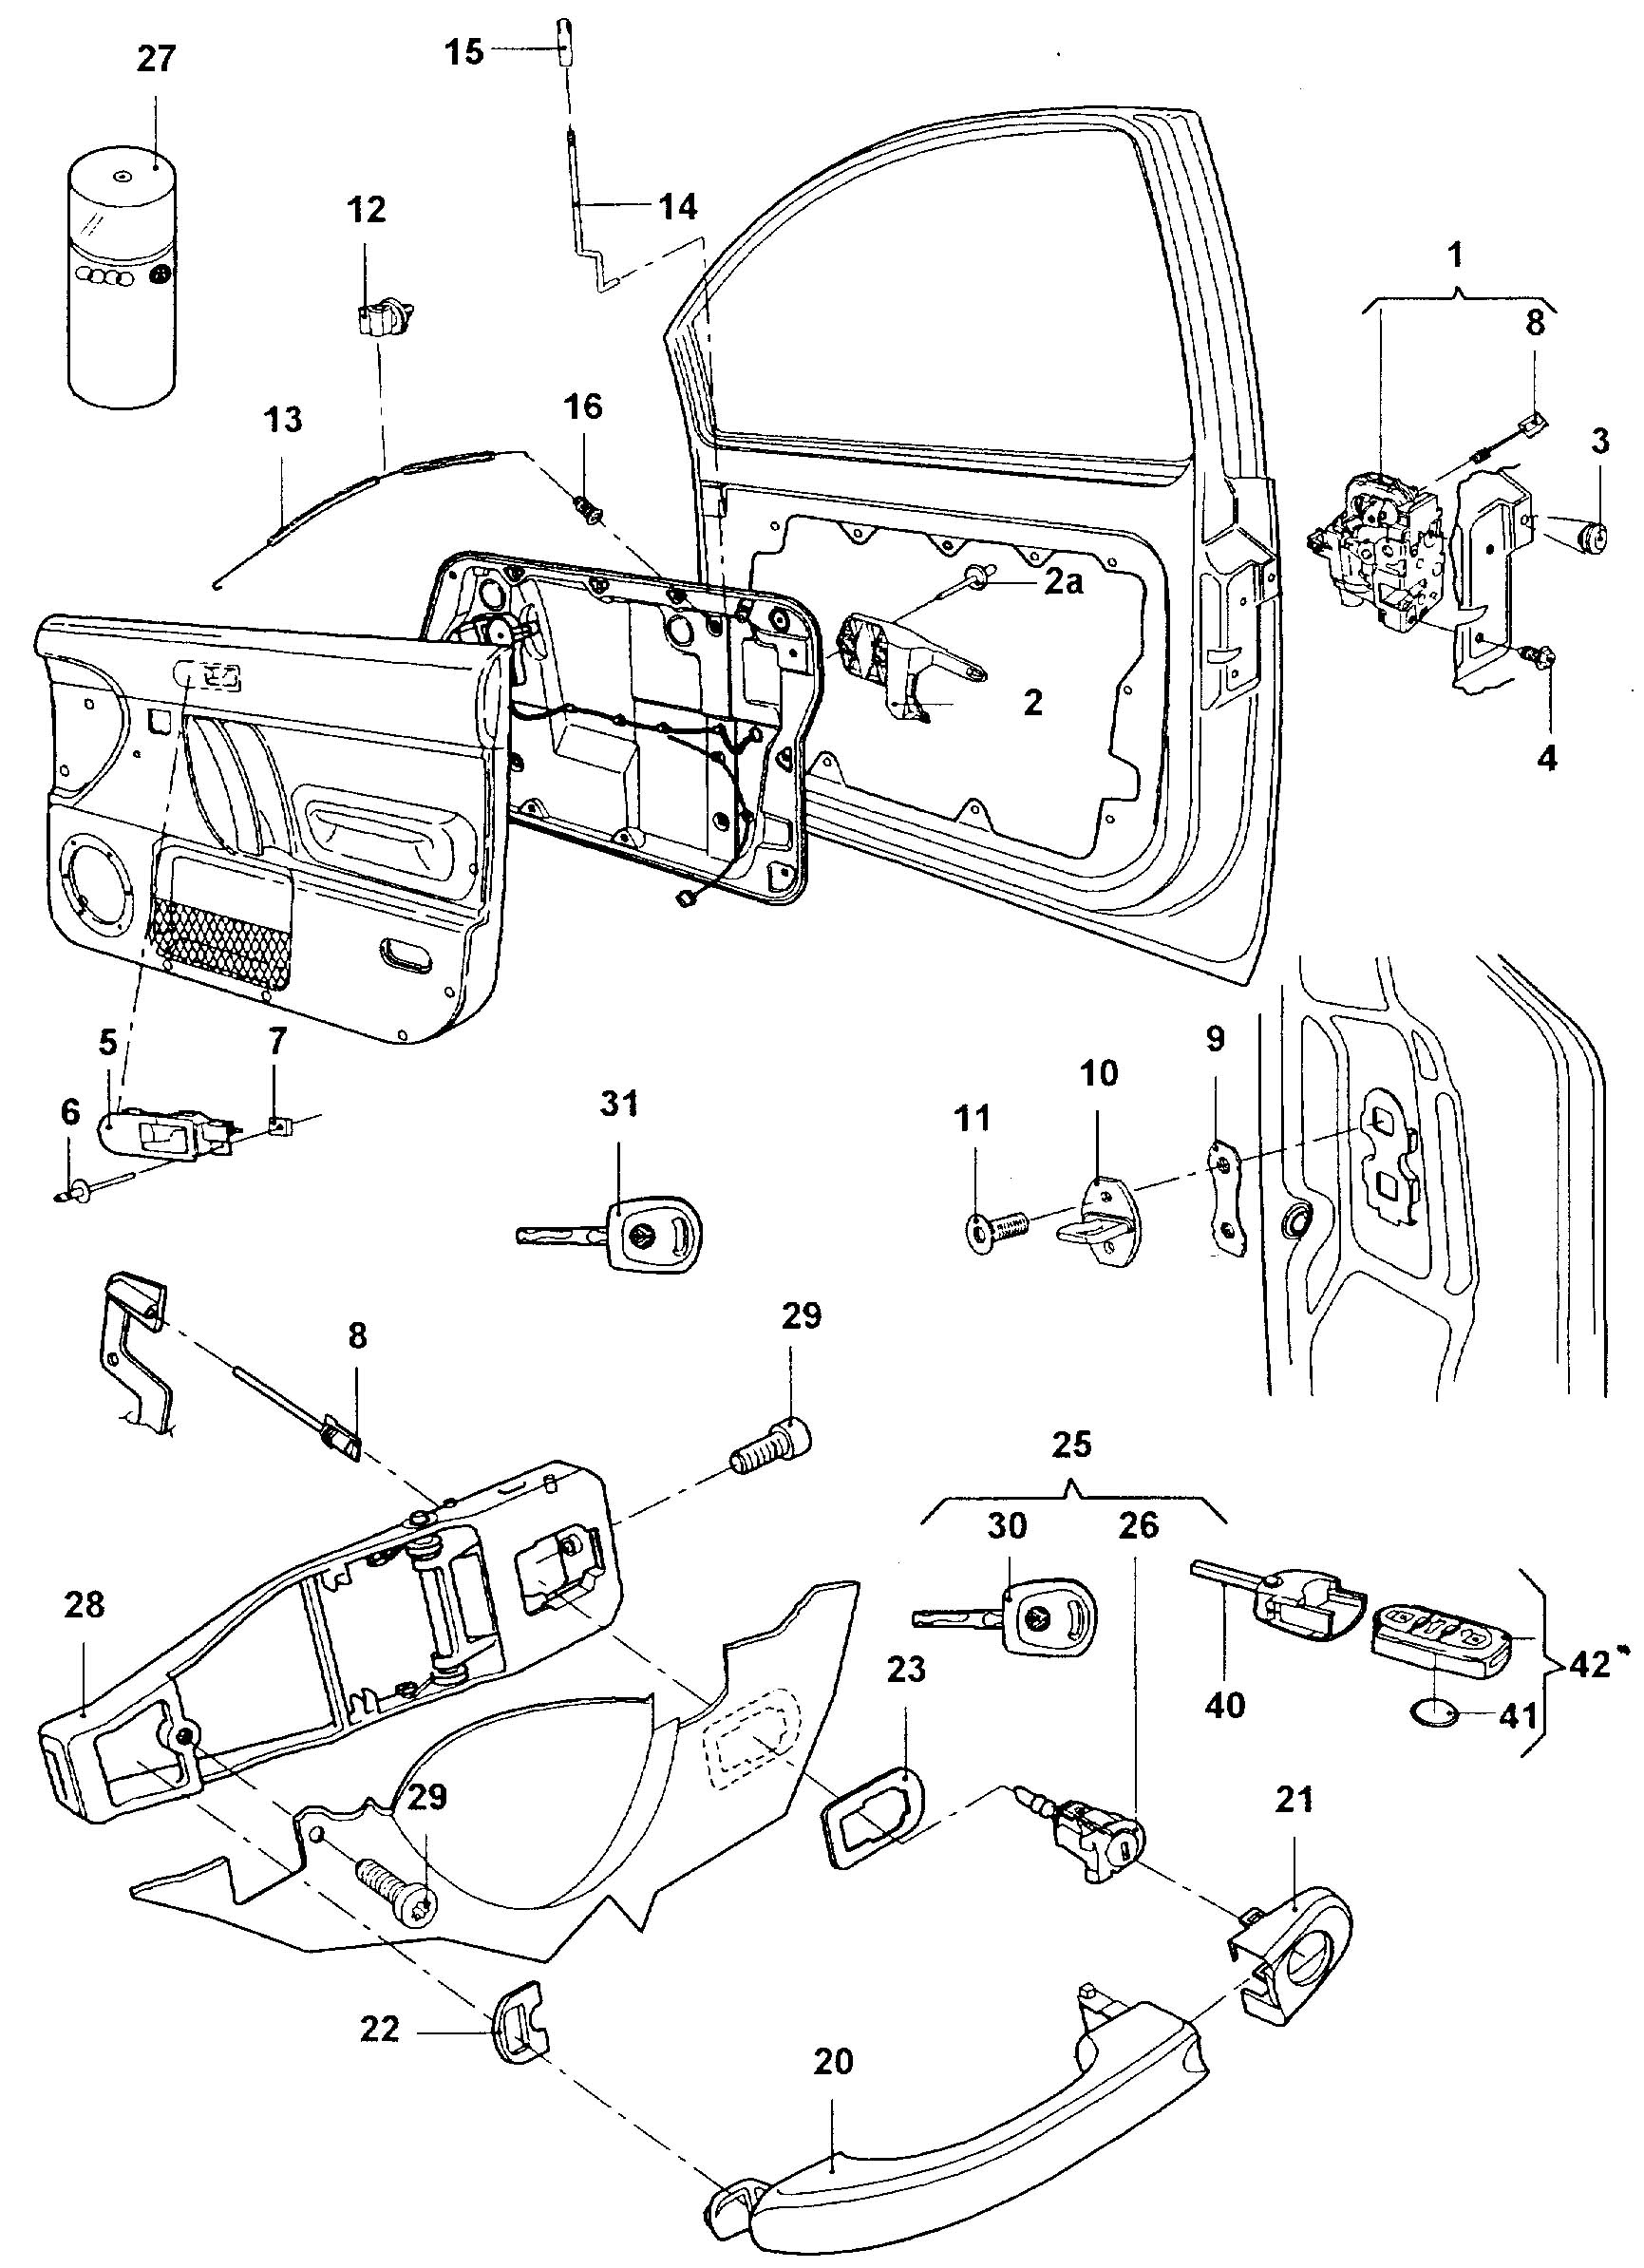 Volkswagen Beetle Door Handle Diagram. Volkswagen. Auto